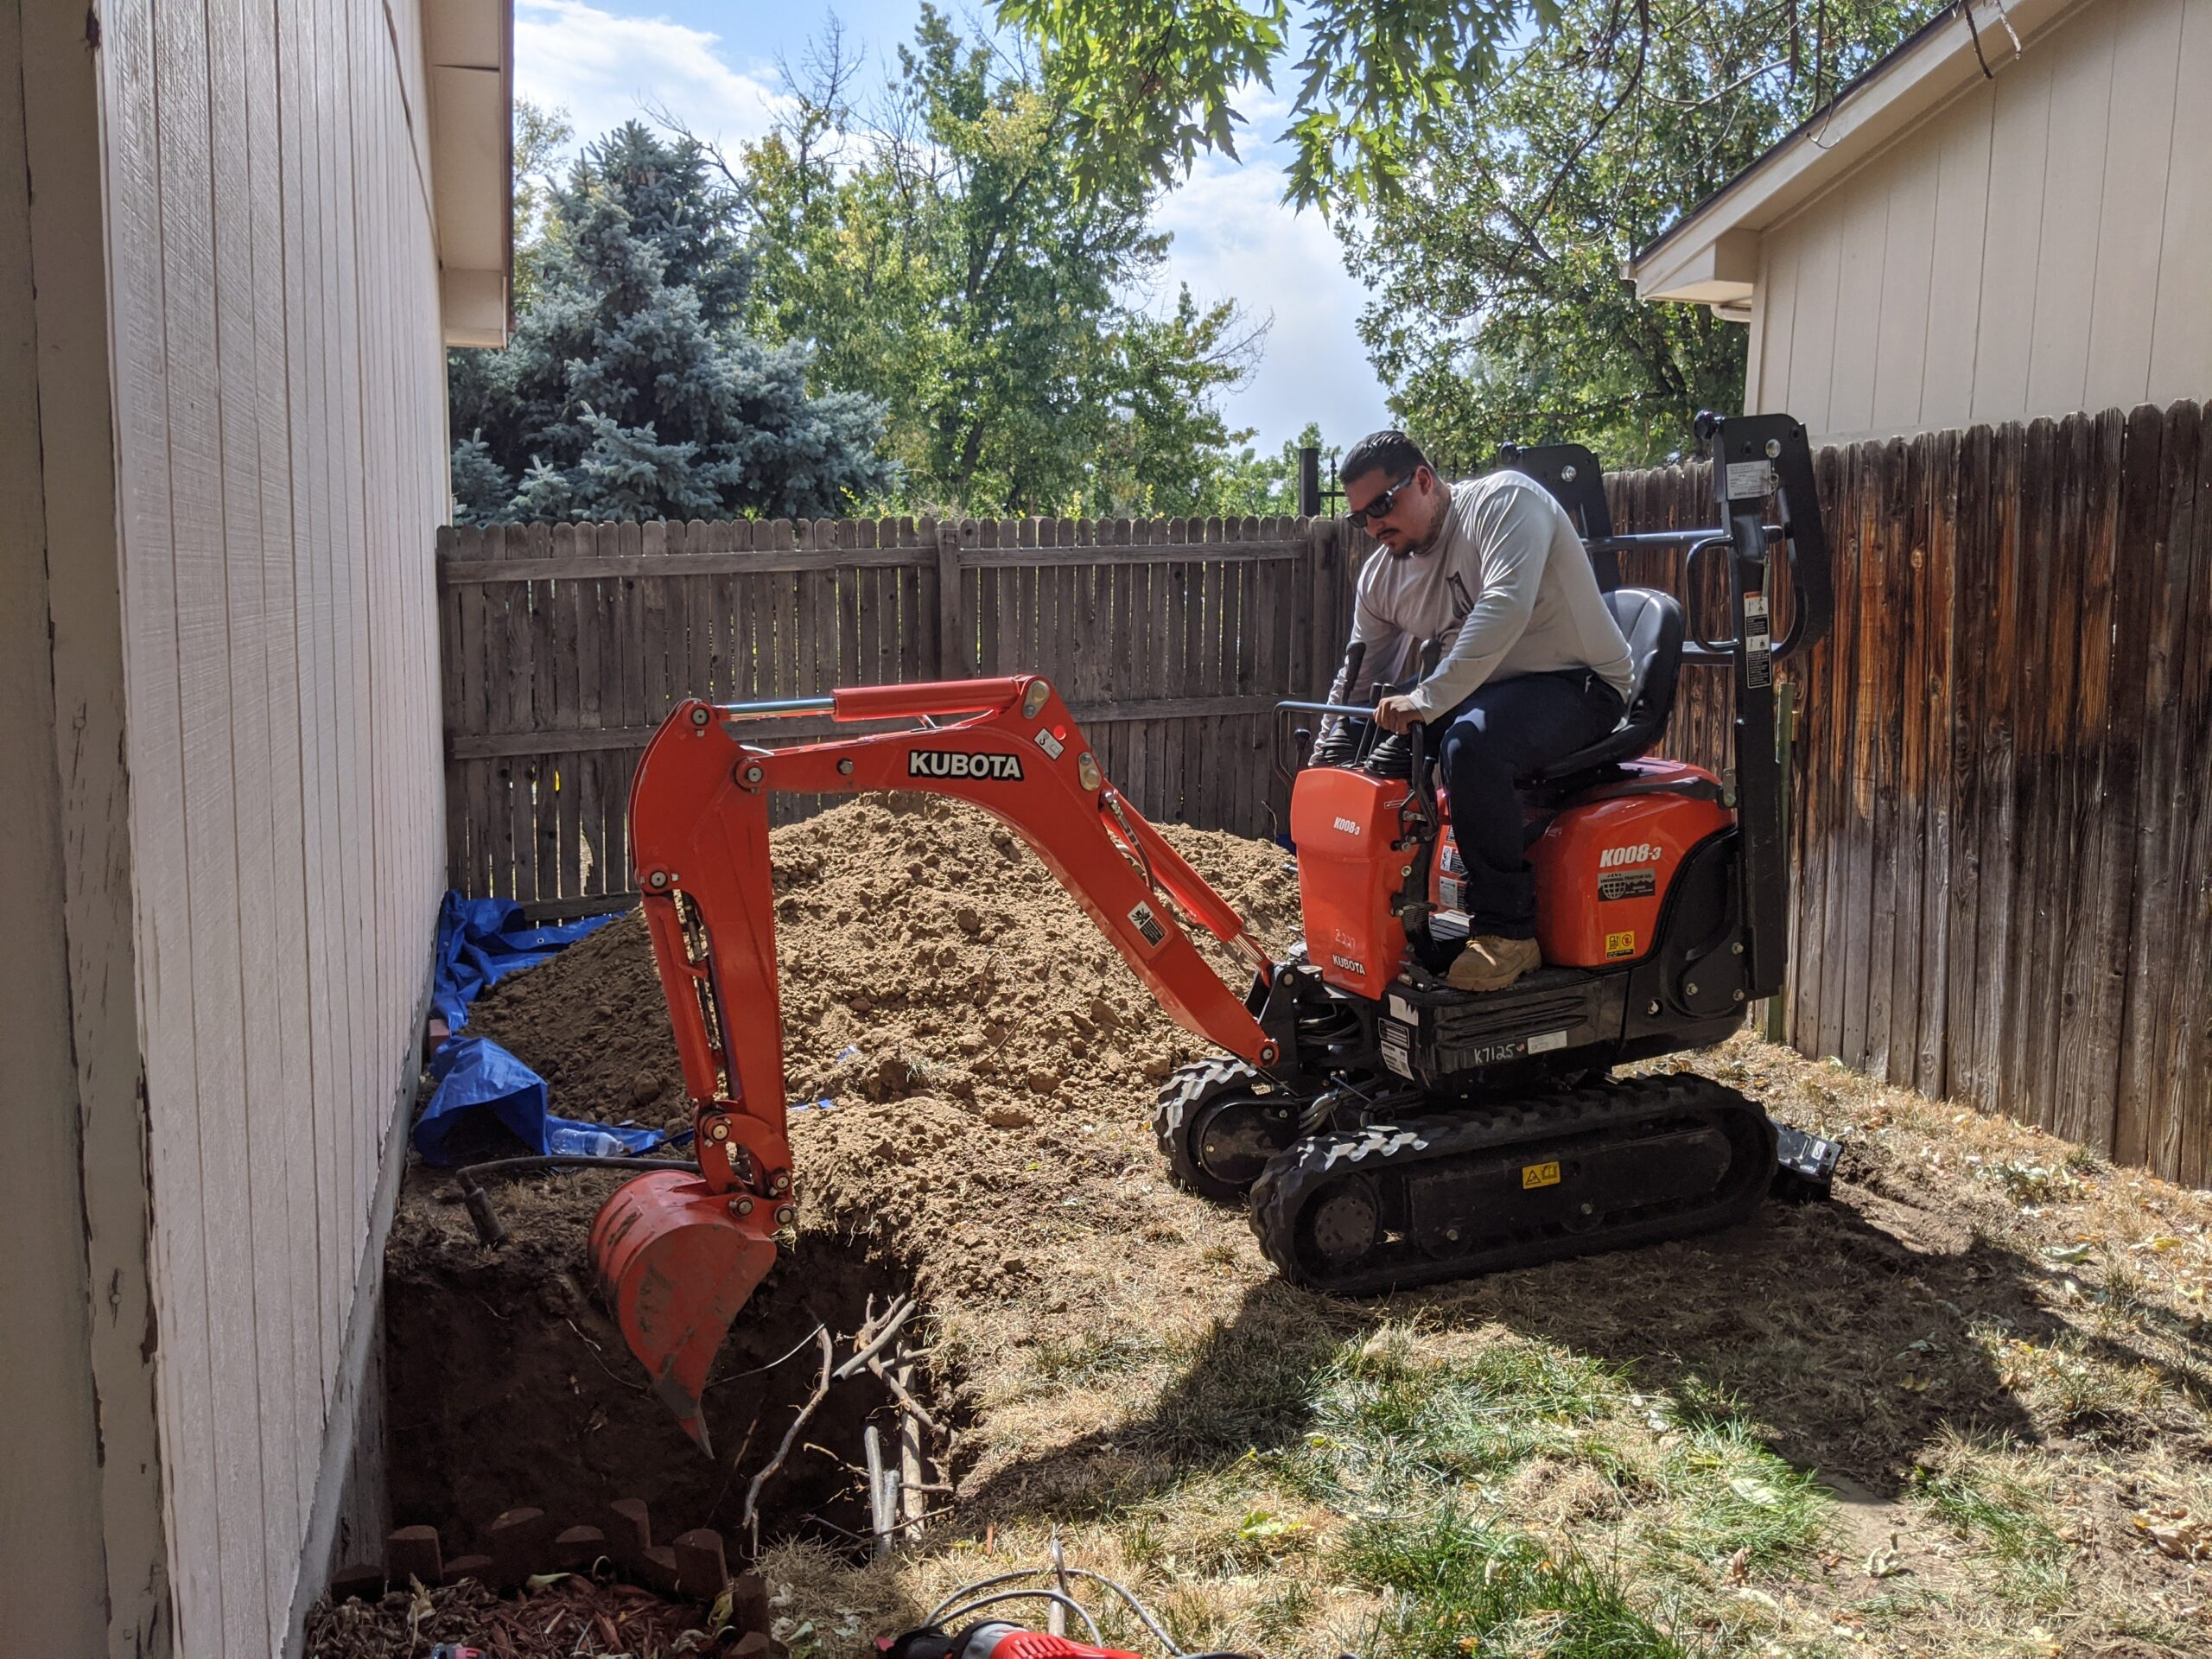 IN PROGRESS: An excavator was used to efficiently dig deeper window wells for both egress windows. Denver Egress Window made a neat pile of dirt next to the new hole so that they could easily use it to fill in around the new window well walls.